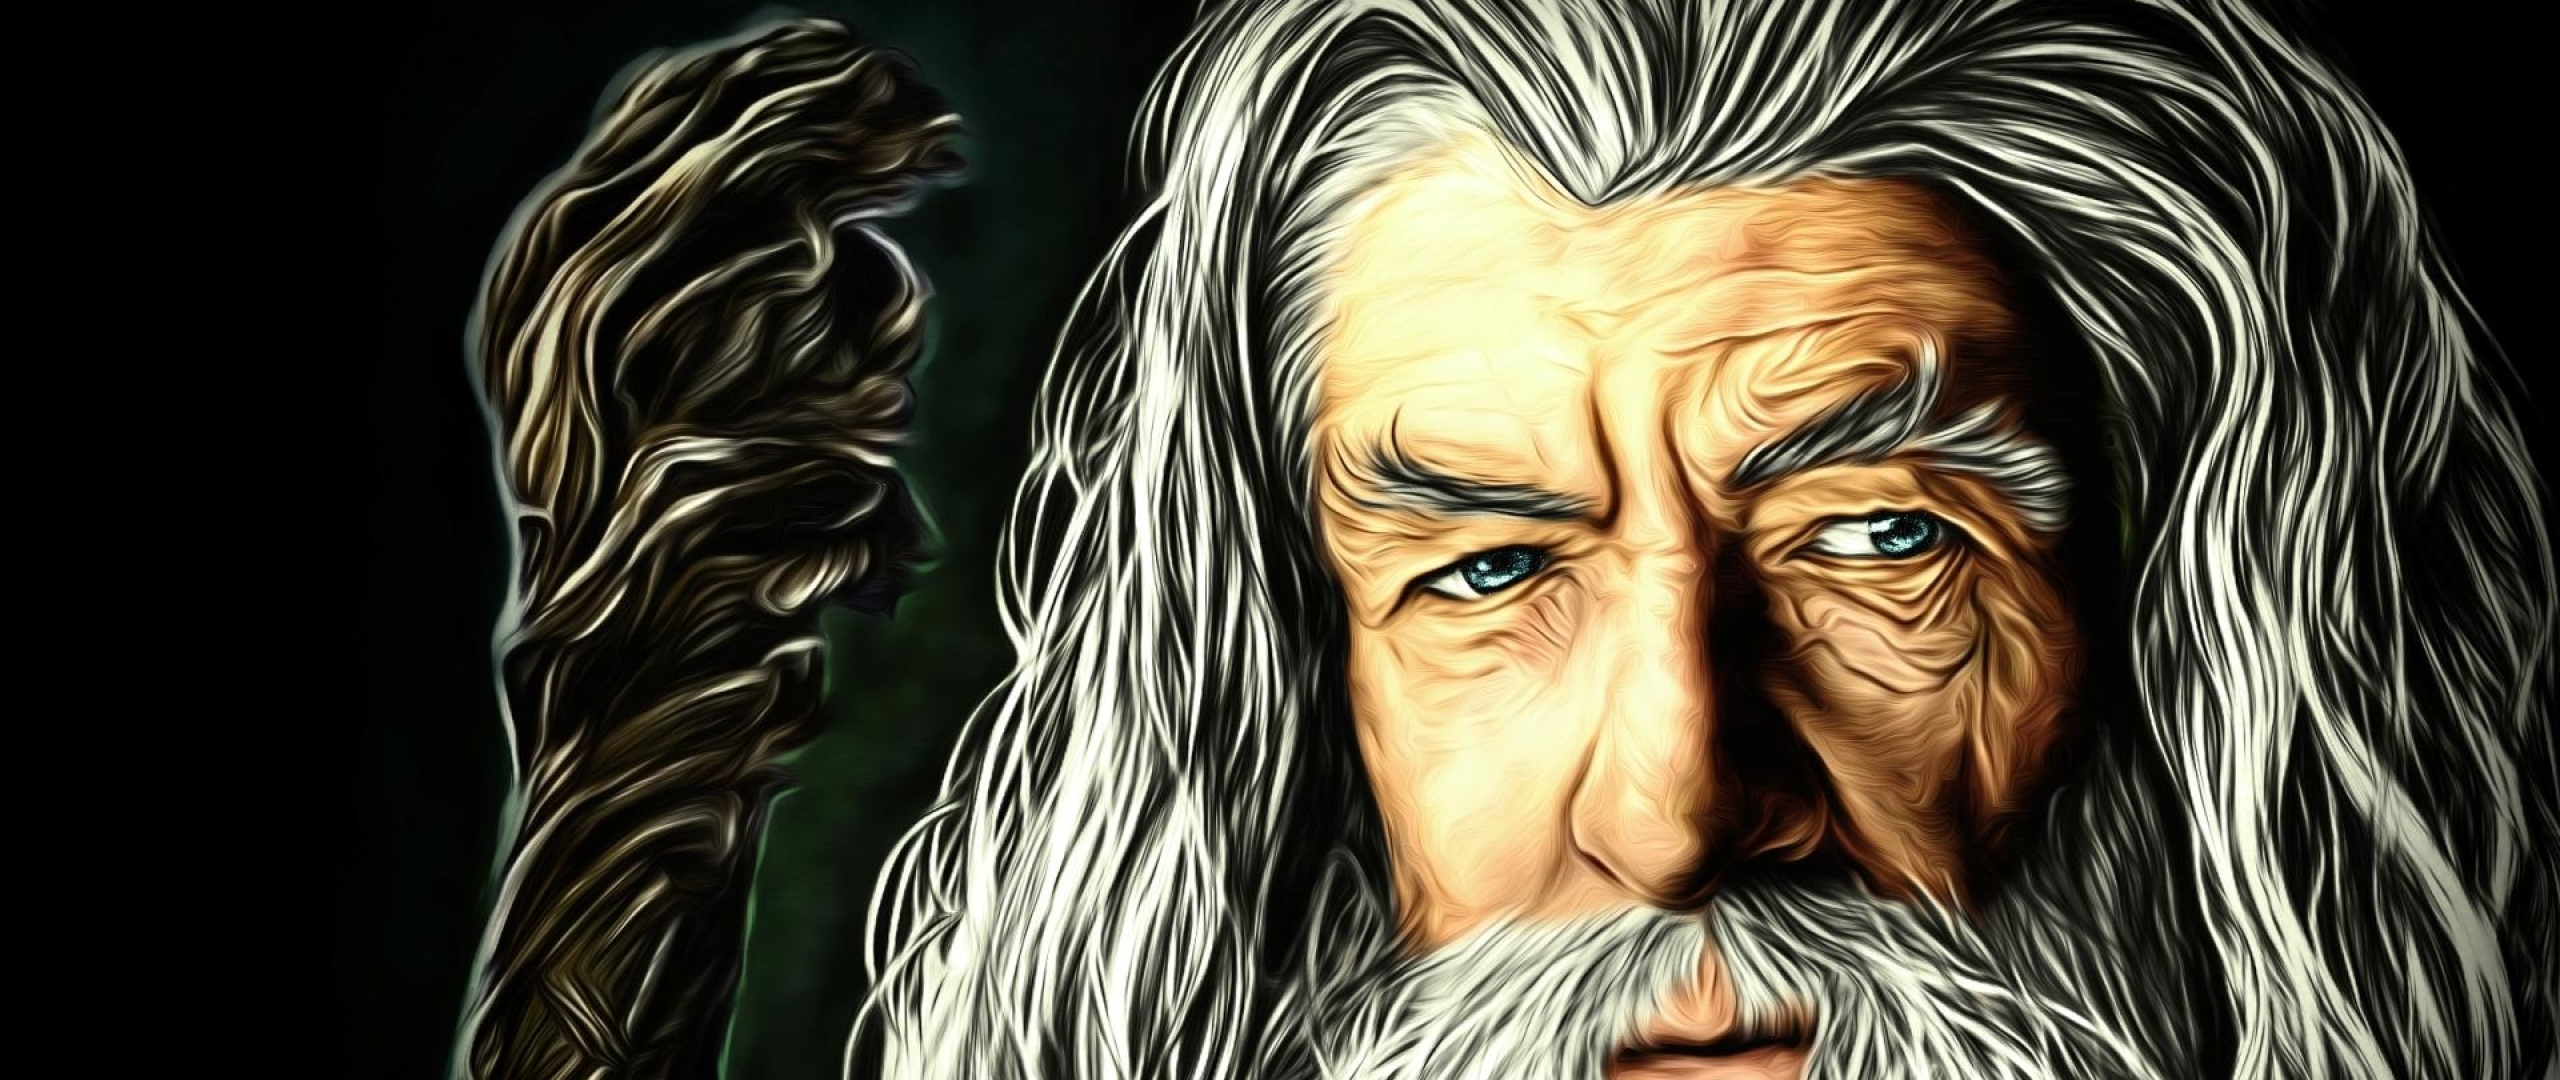 2560x1080 Gandalf The Lord Of The Rings Artwork 2560x1080 Resolution Wallpaper Hd Fantasy 4k Wallpapers Images Photos And Background